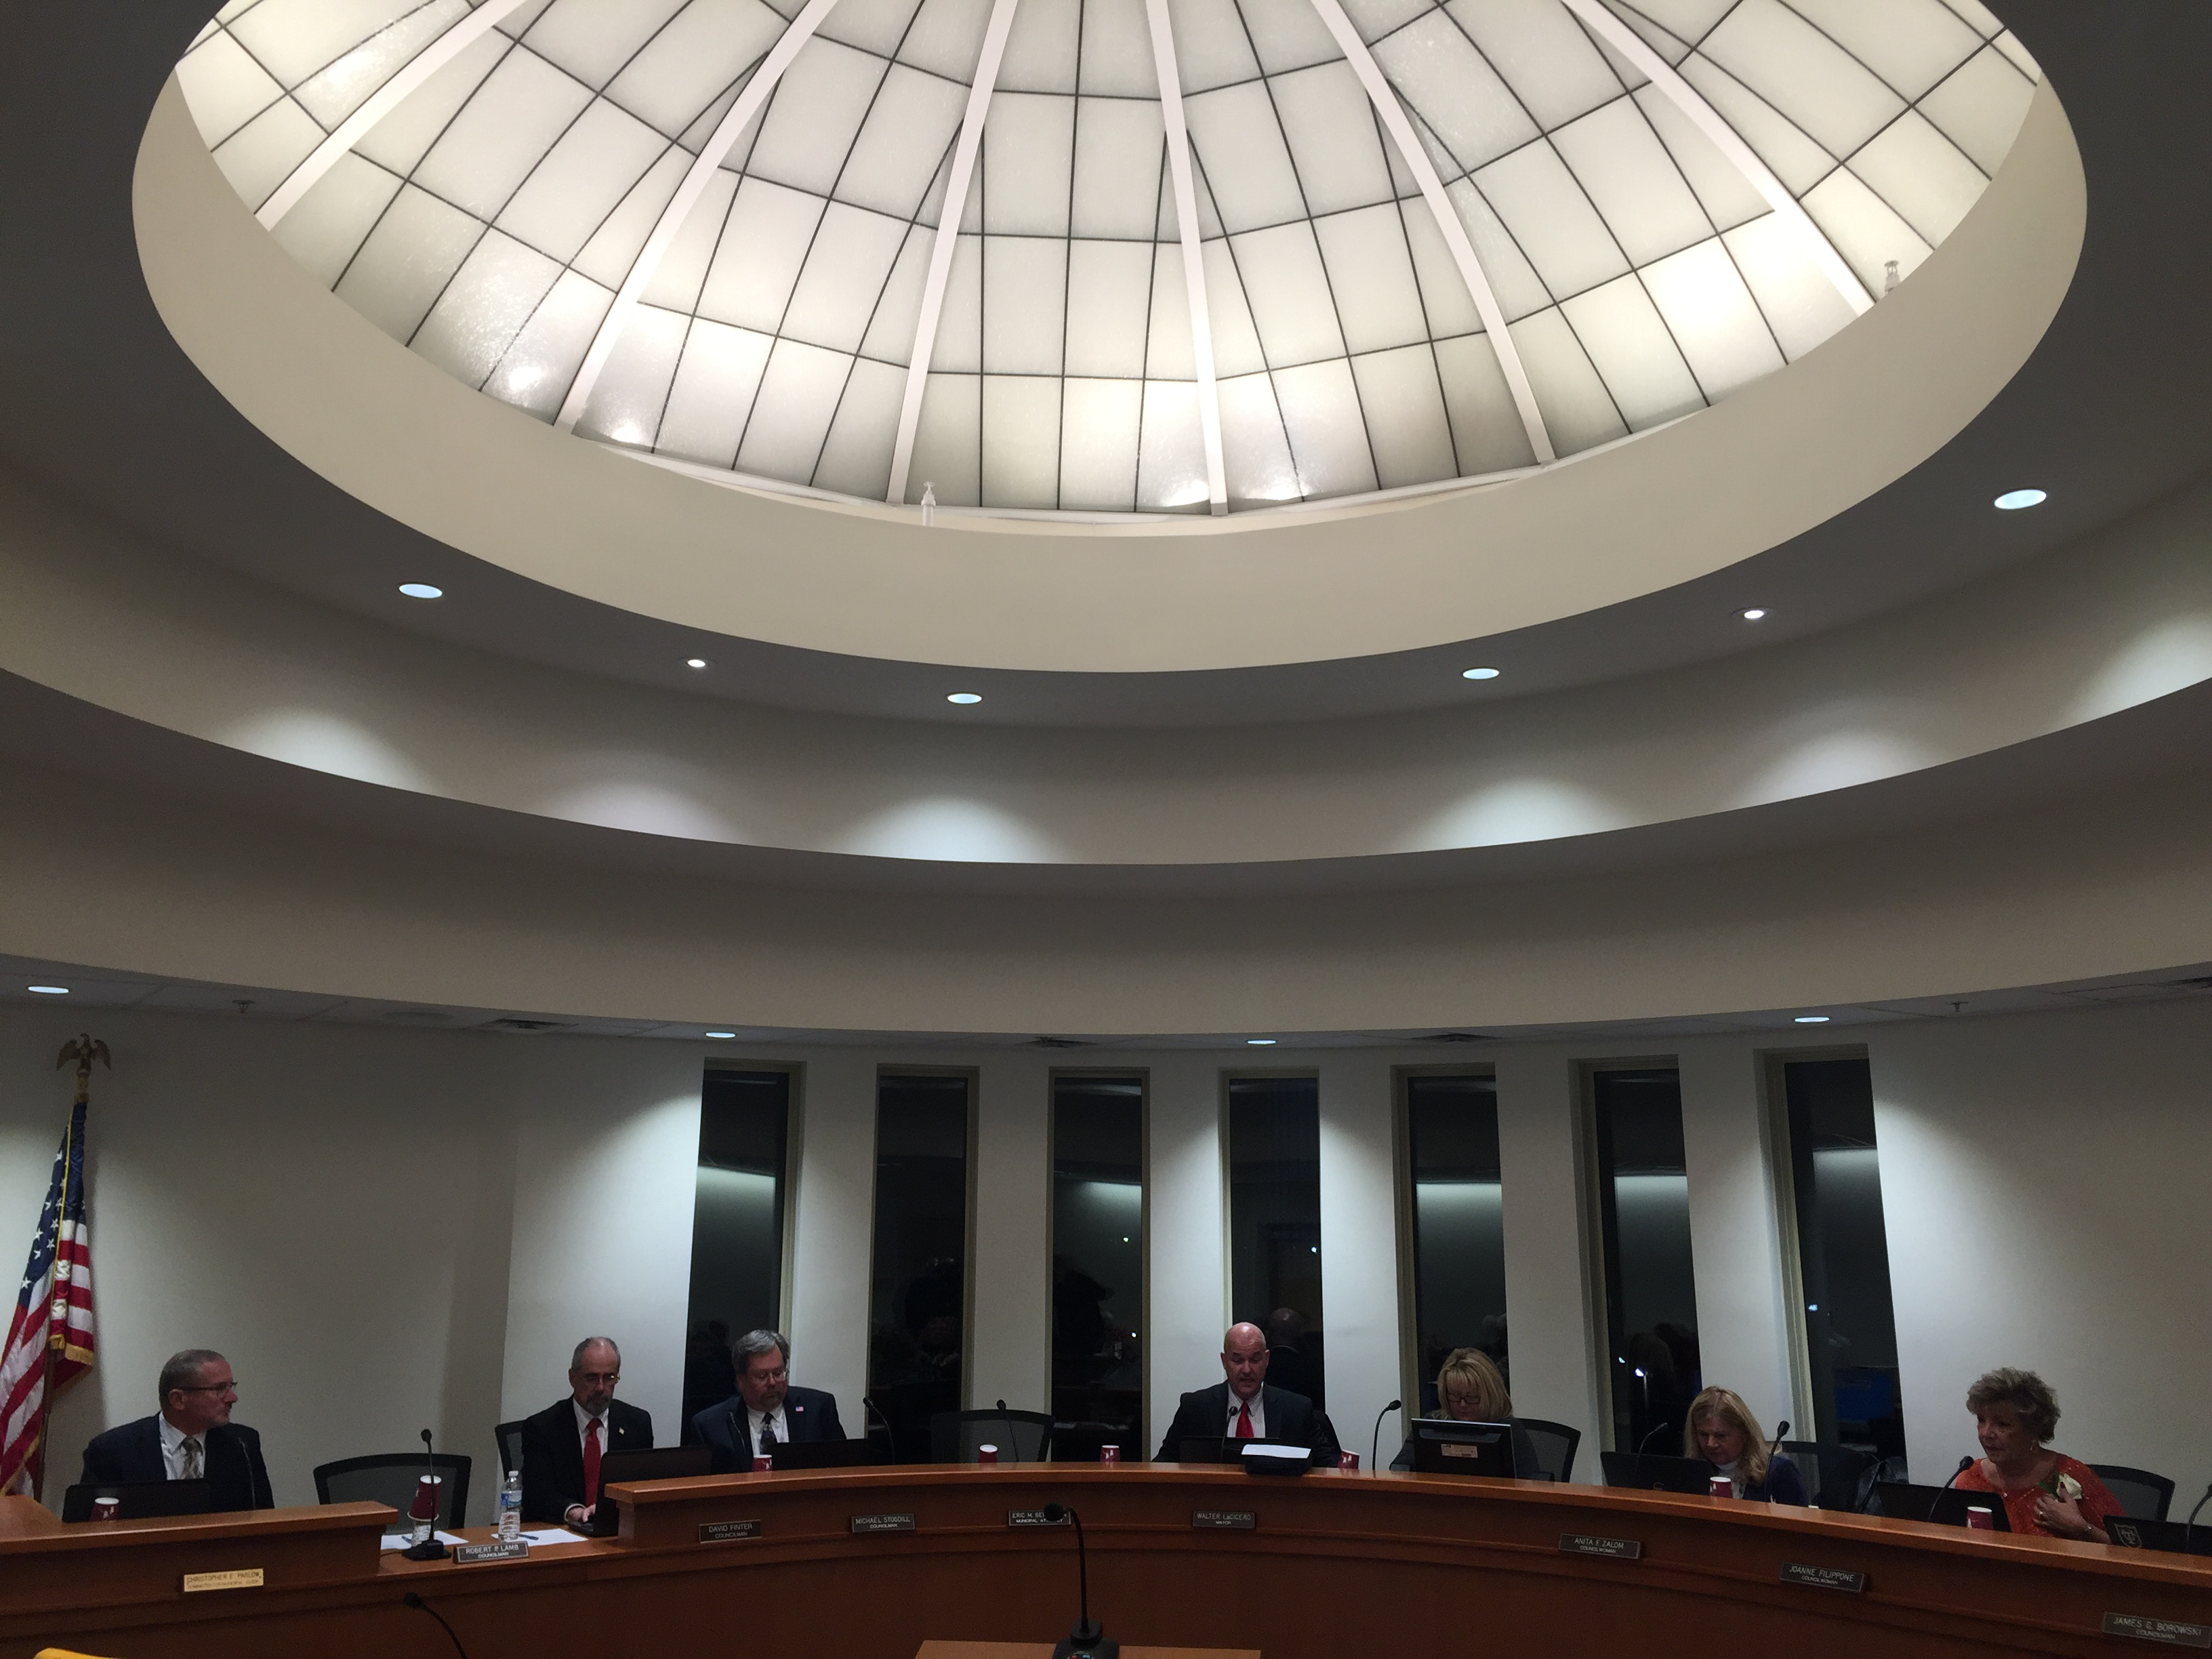 The Lavallette council's 2016 reorganizational meeting gets underway in the borough's new municipal complex. (Photo: Daniel Nee)